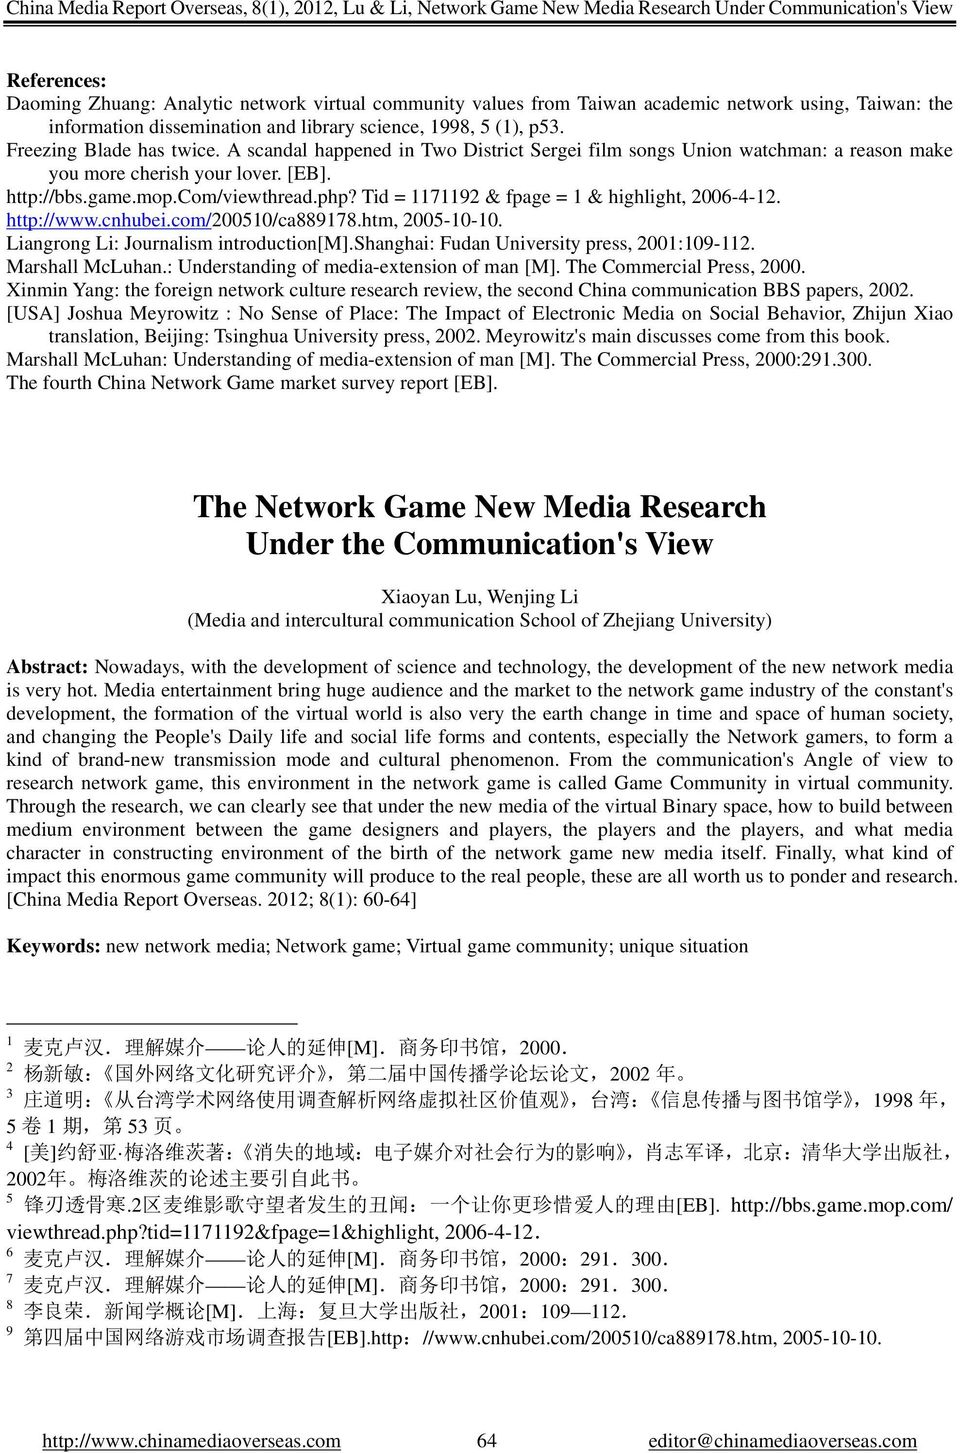 Tid = 1171192 & fpage = 1 & highlight, 2006-4-12. http://www.cnhubei.com/200510/ca889178.htm, 2005-10-10. Liangrong Li: Journalism introduction[m].shanghai: Fudan University press, 2001:109-112.